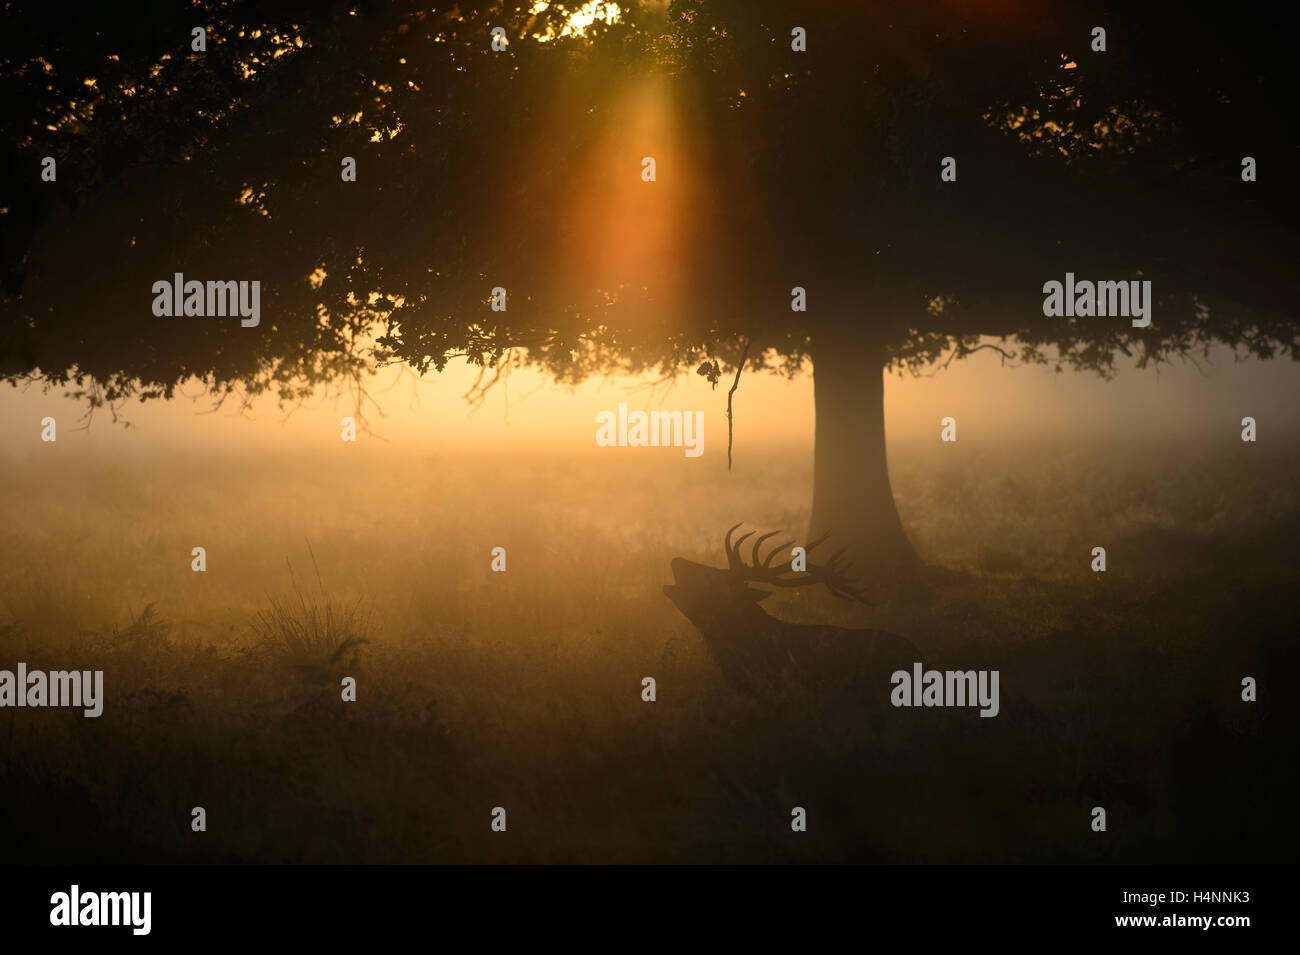 Red deer stag calling in early misty morning at sunrise, under a tree and light rays, Richmond Park, London, UK. - Stock Image